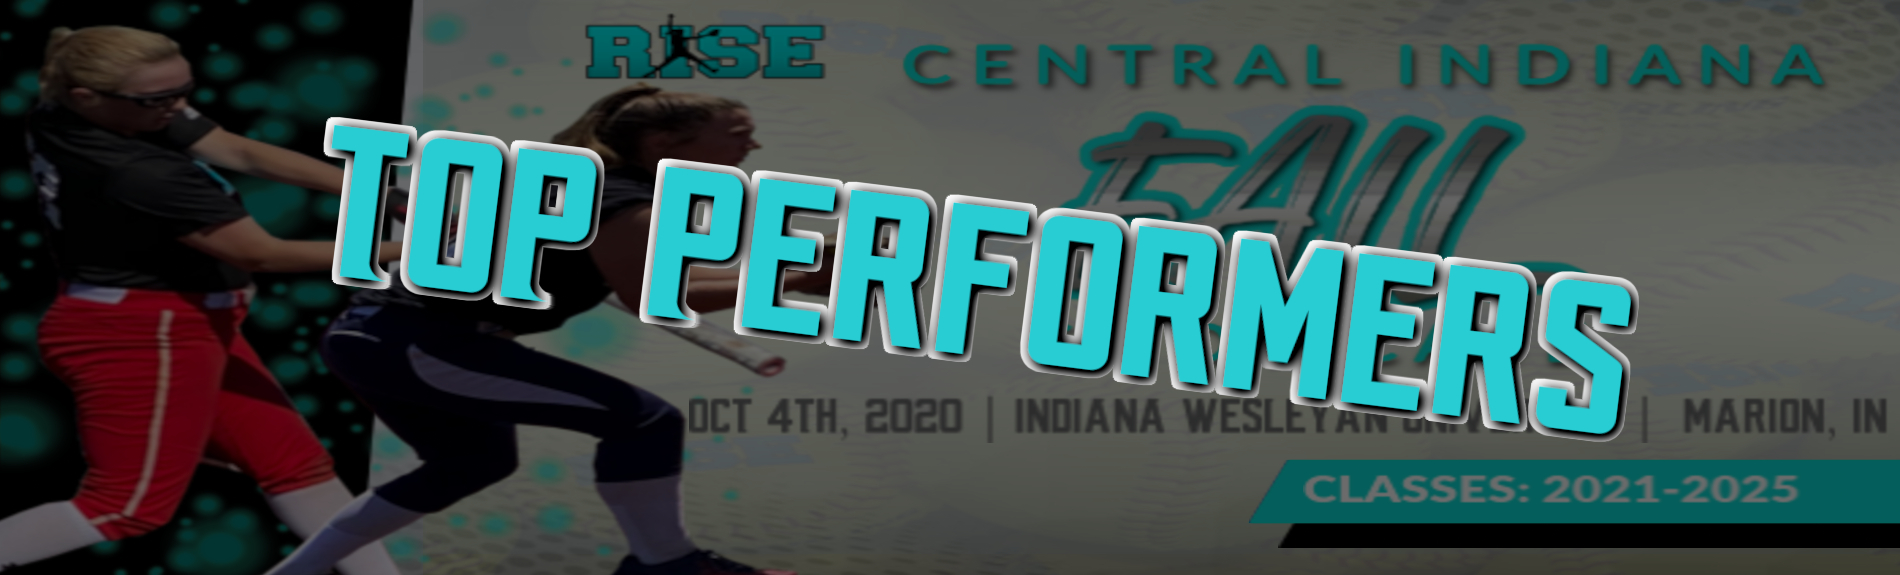 "Central Indiana Fall Showcase ""TOP PERFORMERS"""